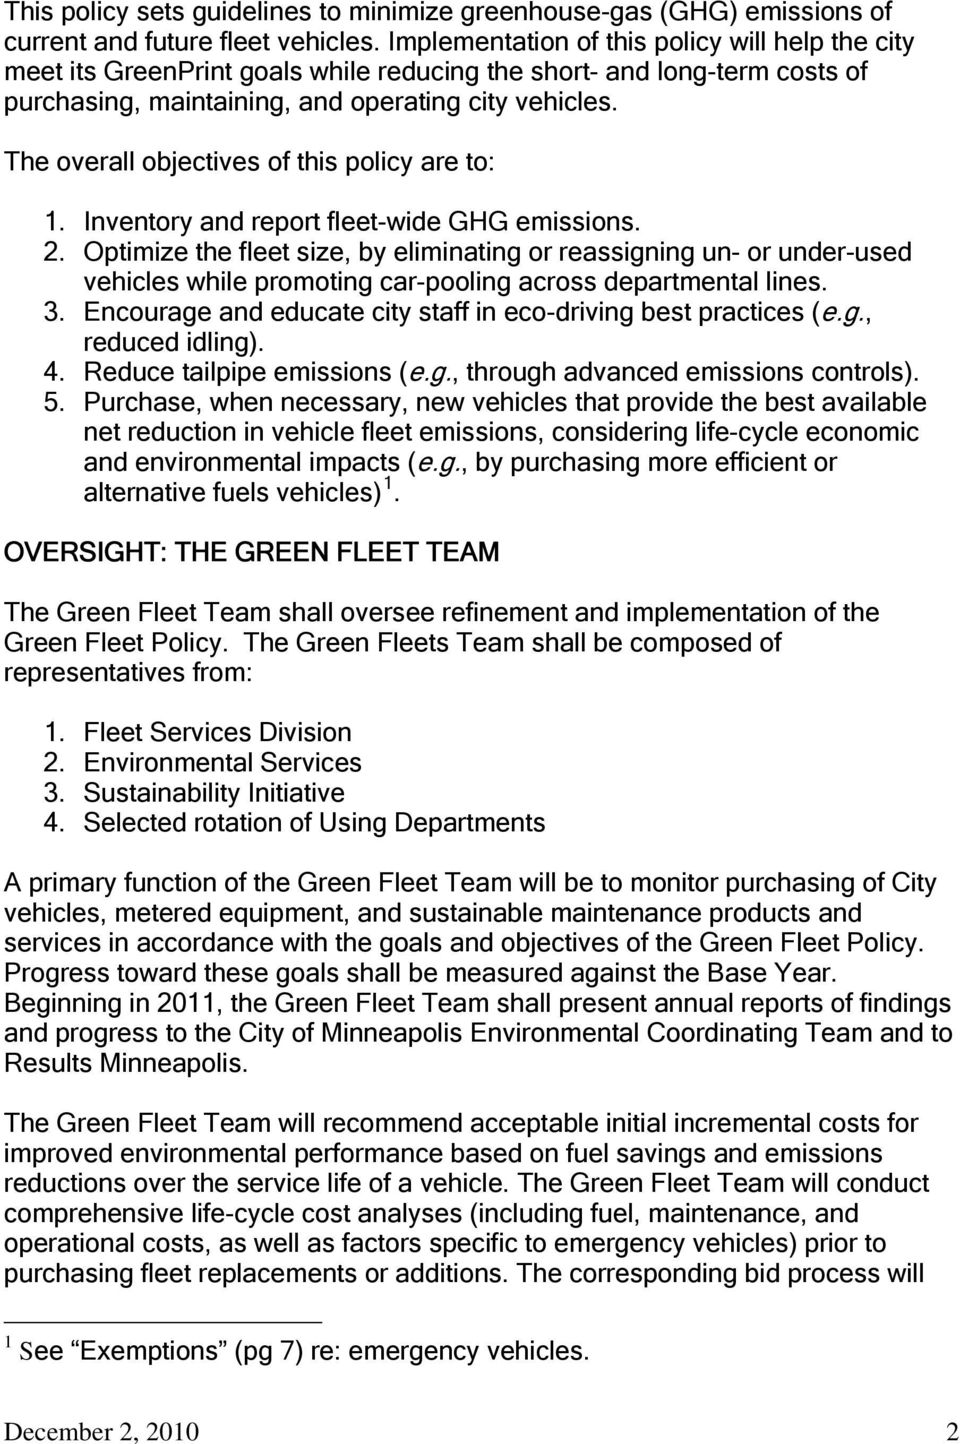 The overall objectives of this policy are to: 1. Inventory and report fleet-wide GHG emissions. 2.